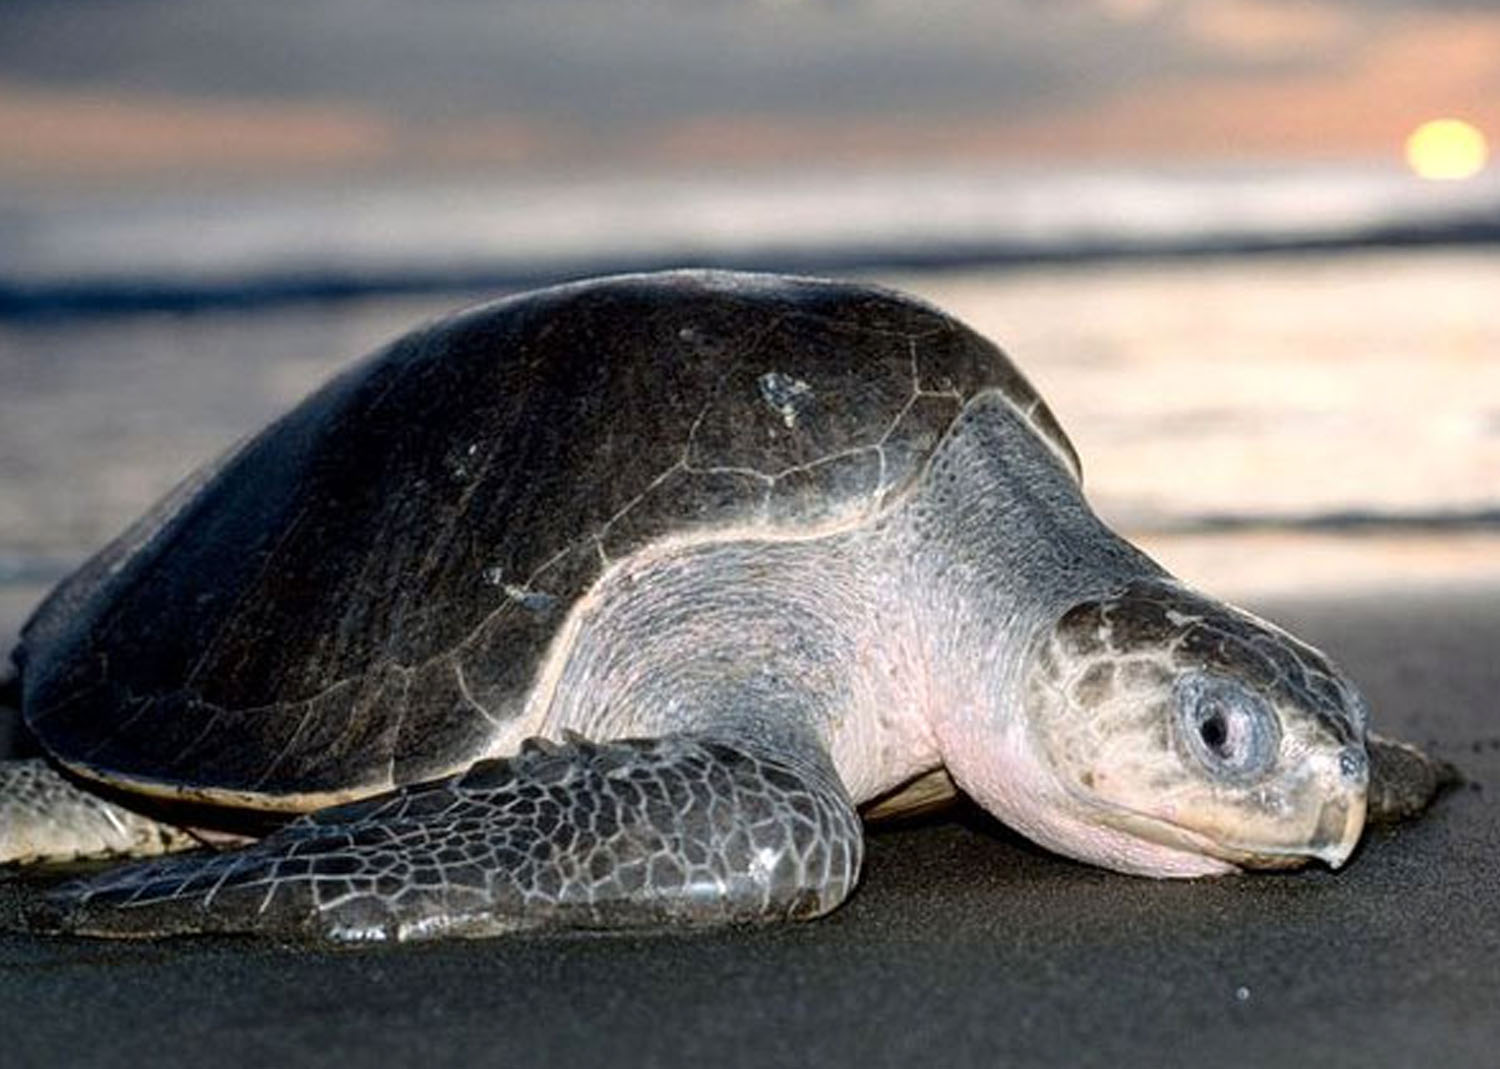 The Olive Ridley's Ecosystem Benefits